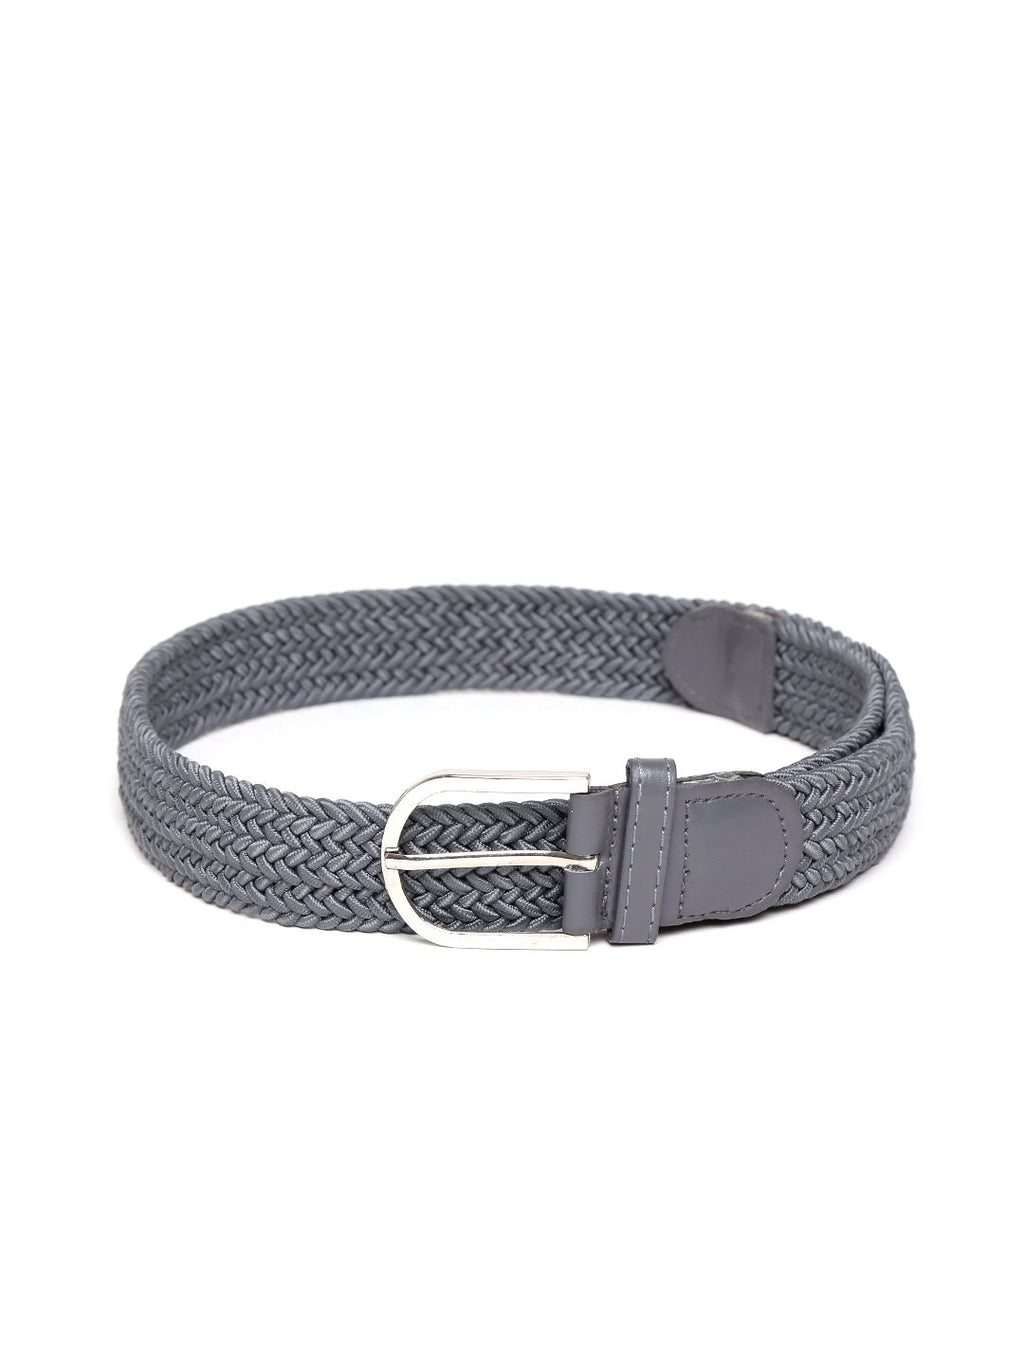 Lazy panda men grey webbed belt